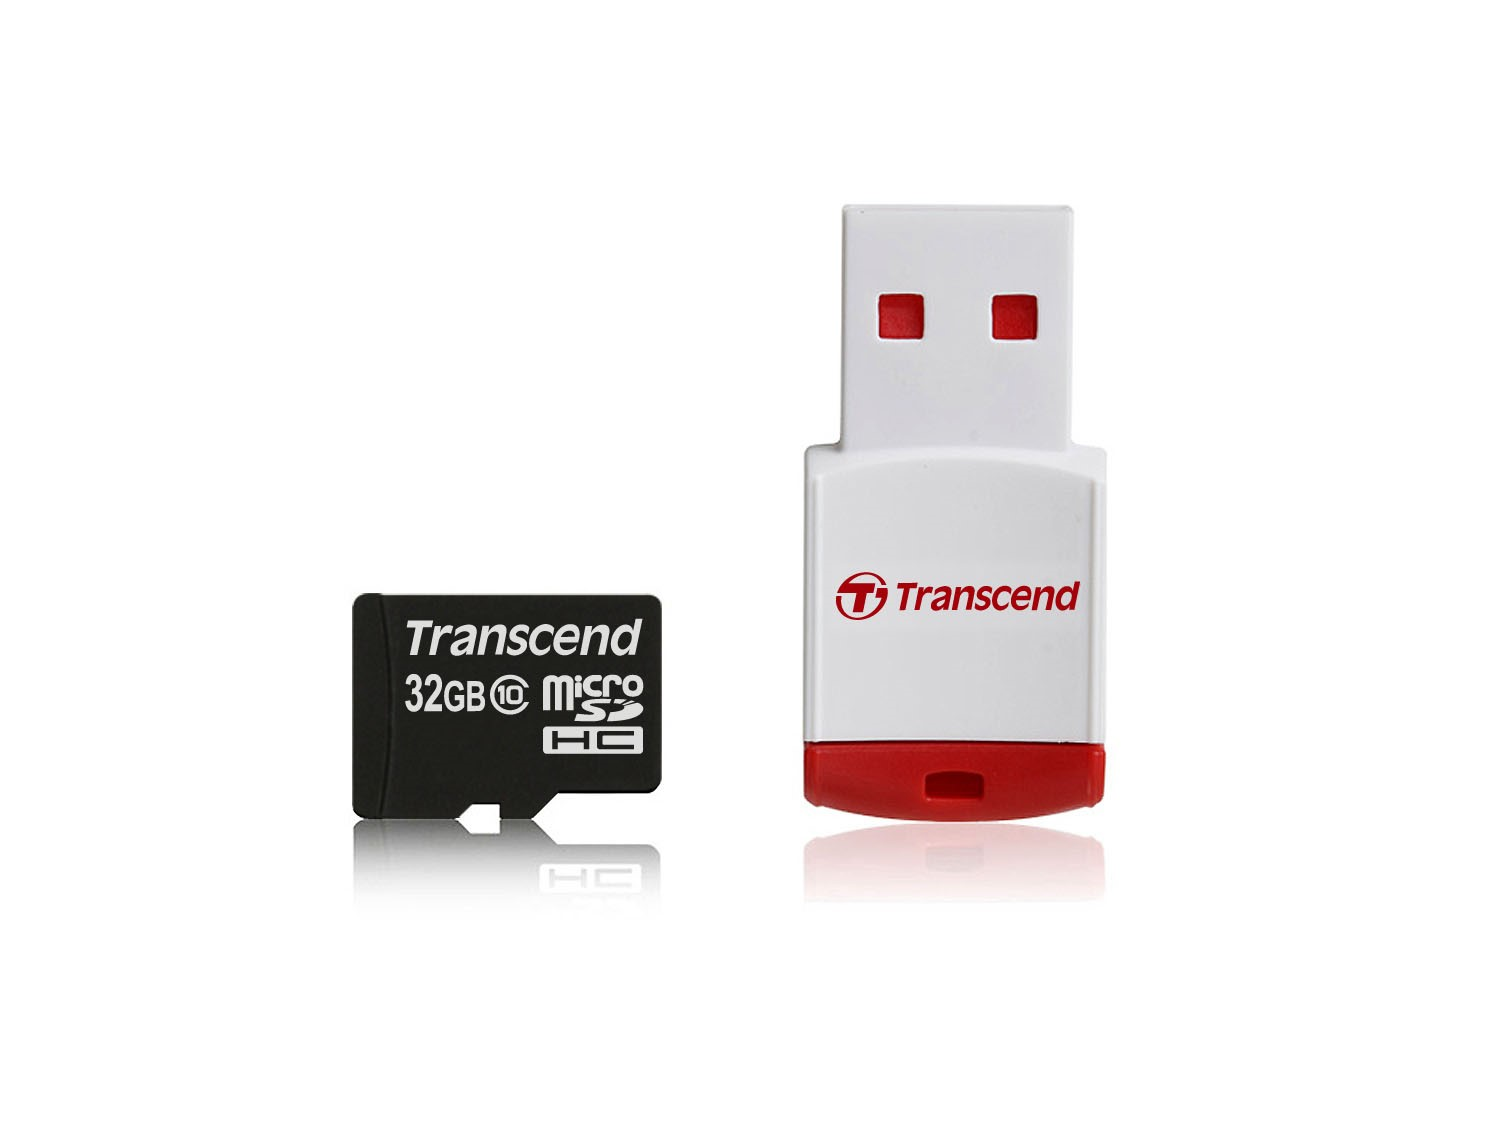 TRANSCEND Micro SDHC Class 10 32GB + Card Reader